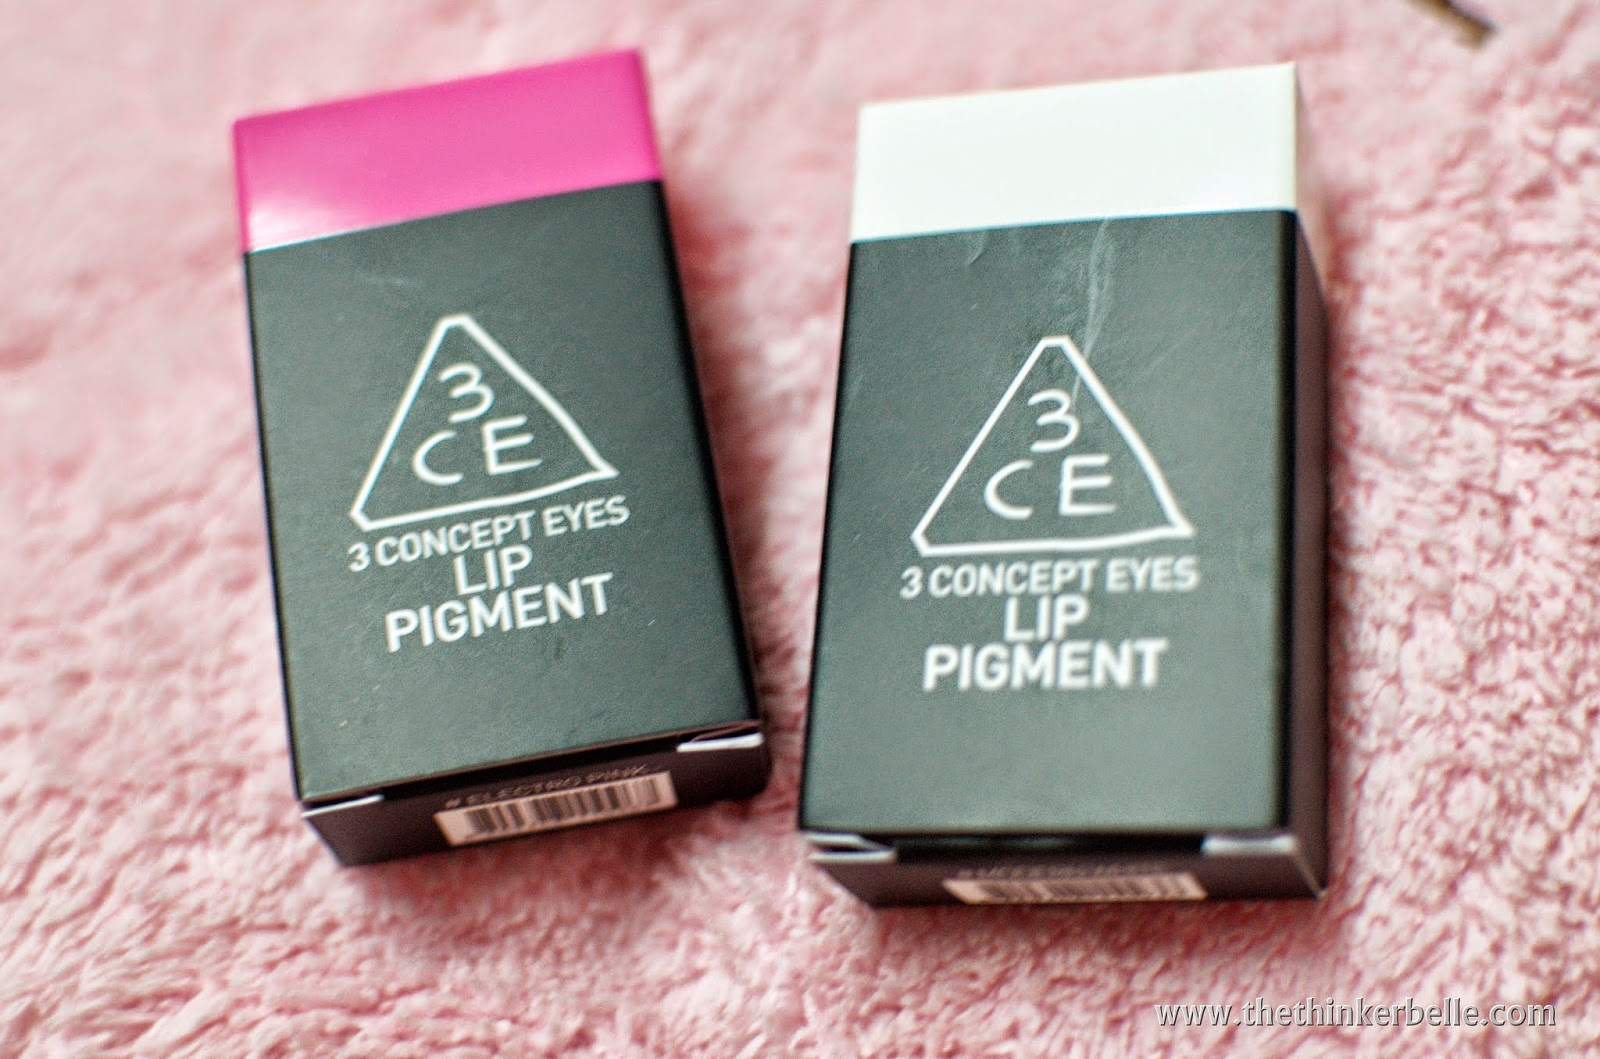 3CE Lip Pigment; 3CE Lip Pigment Review; 3CE Lip Pigment Tutorial; 3CE Lip Pigment Review Electro Pink; 3CE Lip Pigment Review Modern White